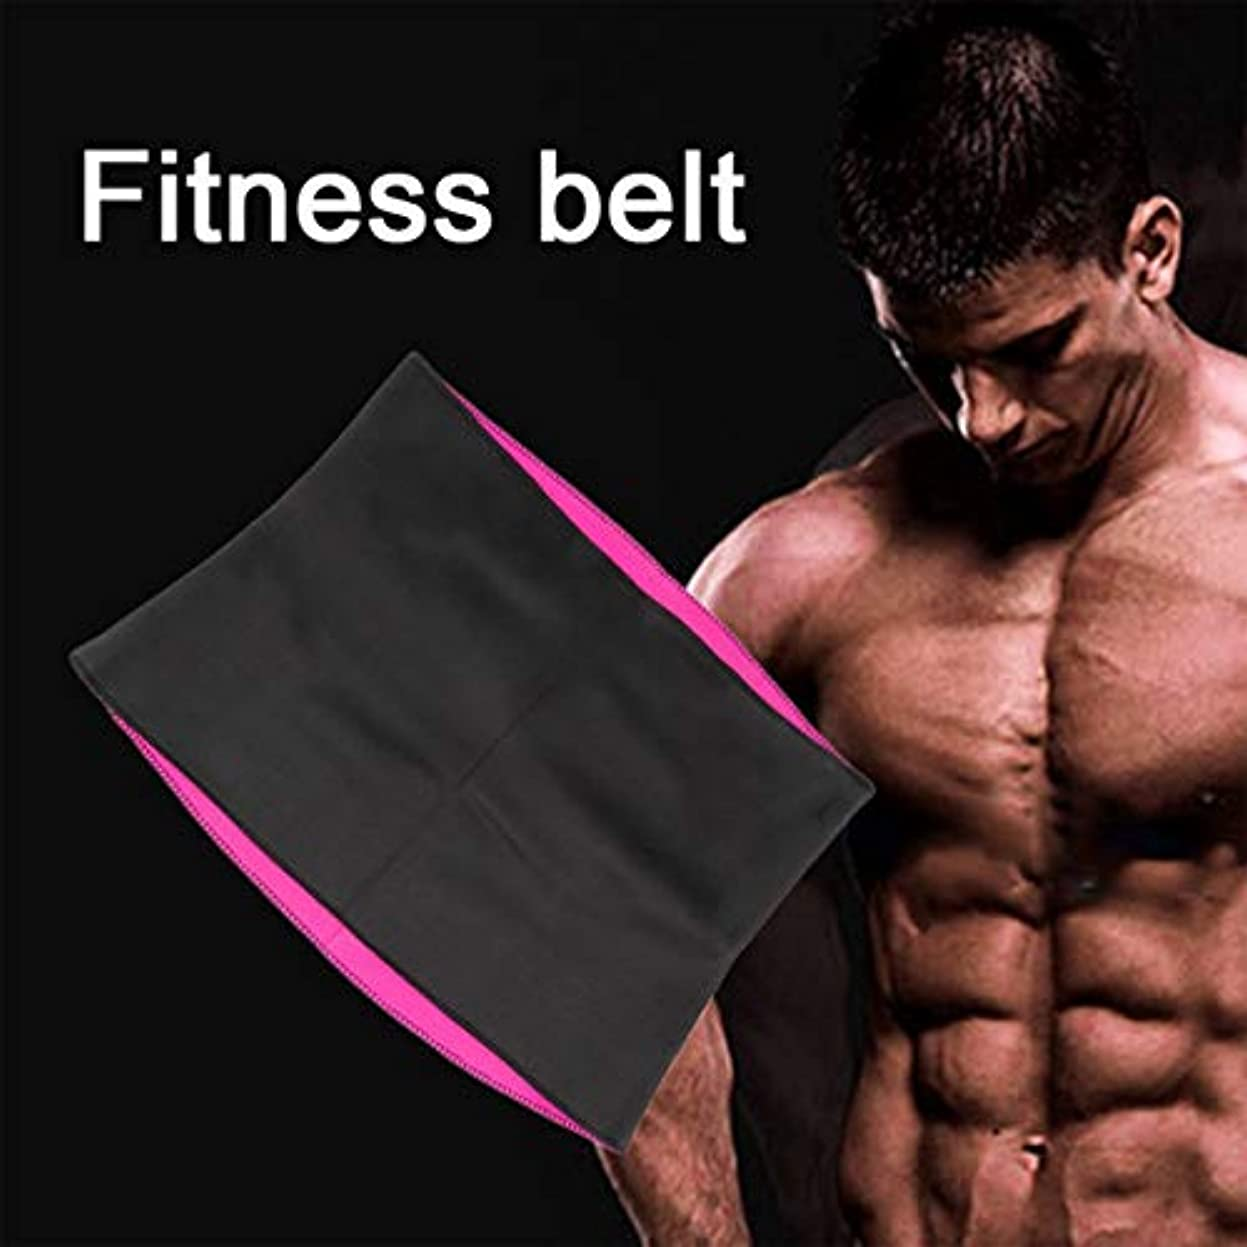 外部持つ締め切りWomen Adult Solid Neoprene Healthy Slimming Weight Loss Waist Belts Body Shaper Slimming Trainer Trimmer Corsets